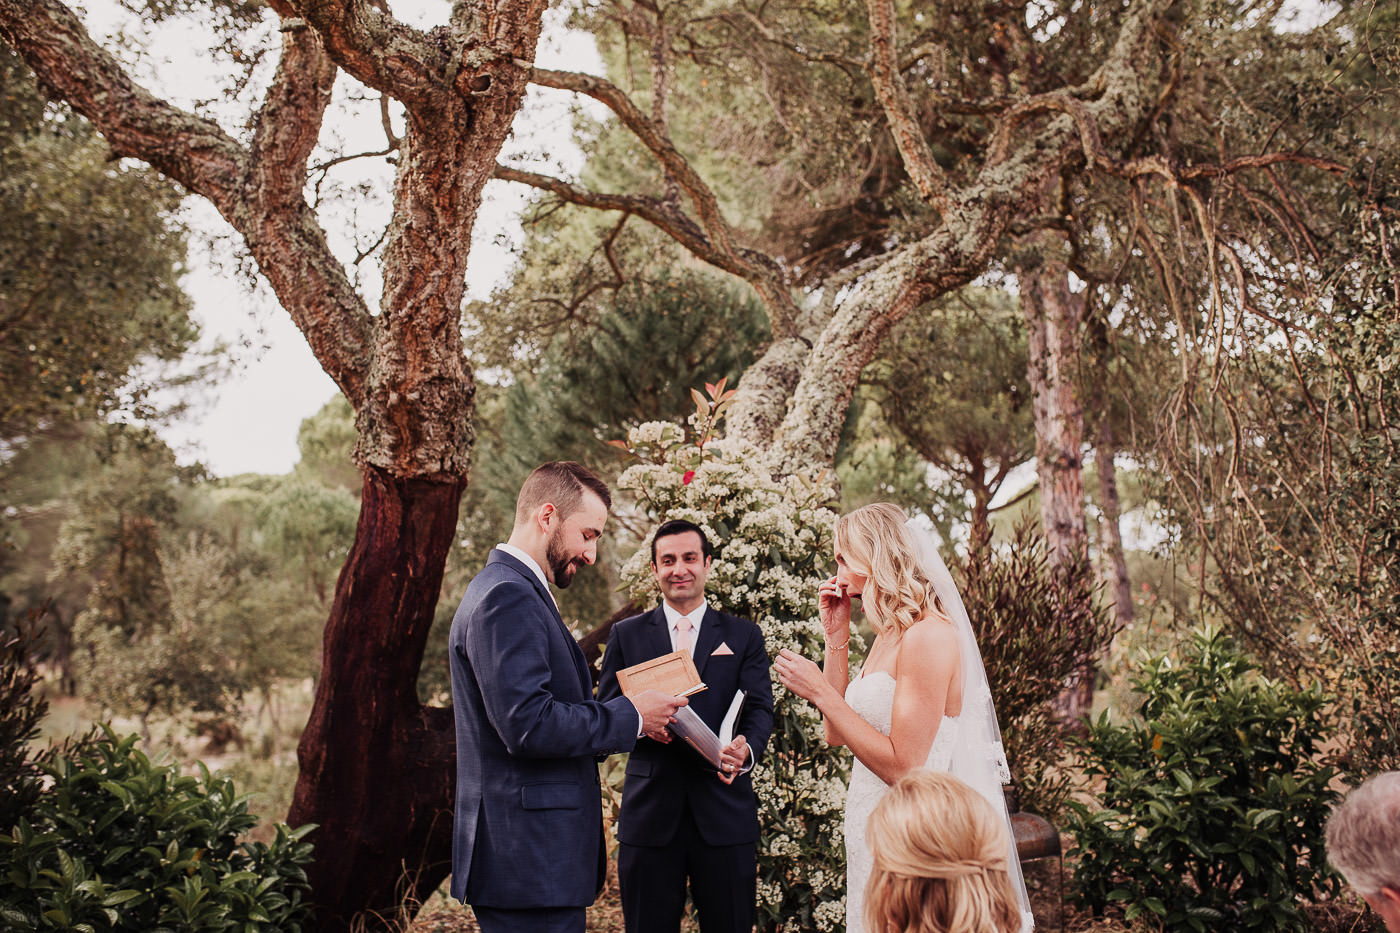 bride-groom_sublime-comporta_portugal_comporta_documentary-wedding-photography